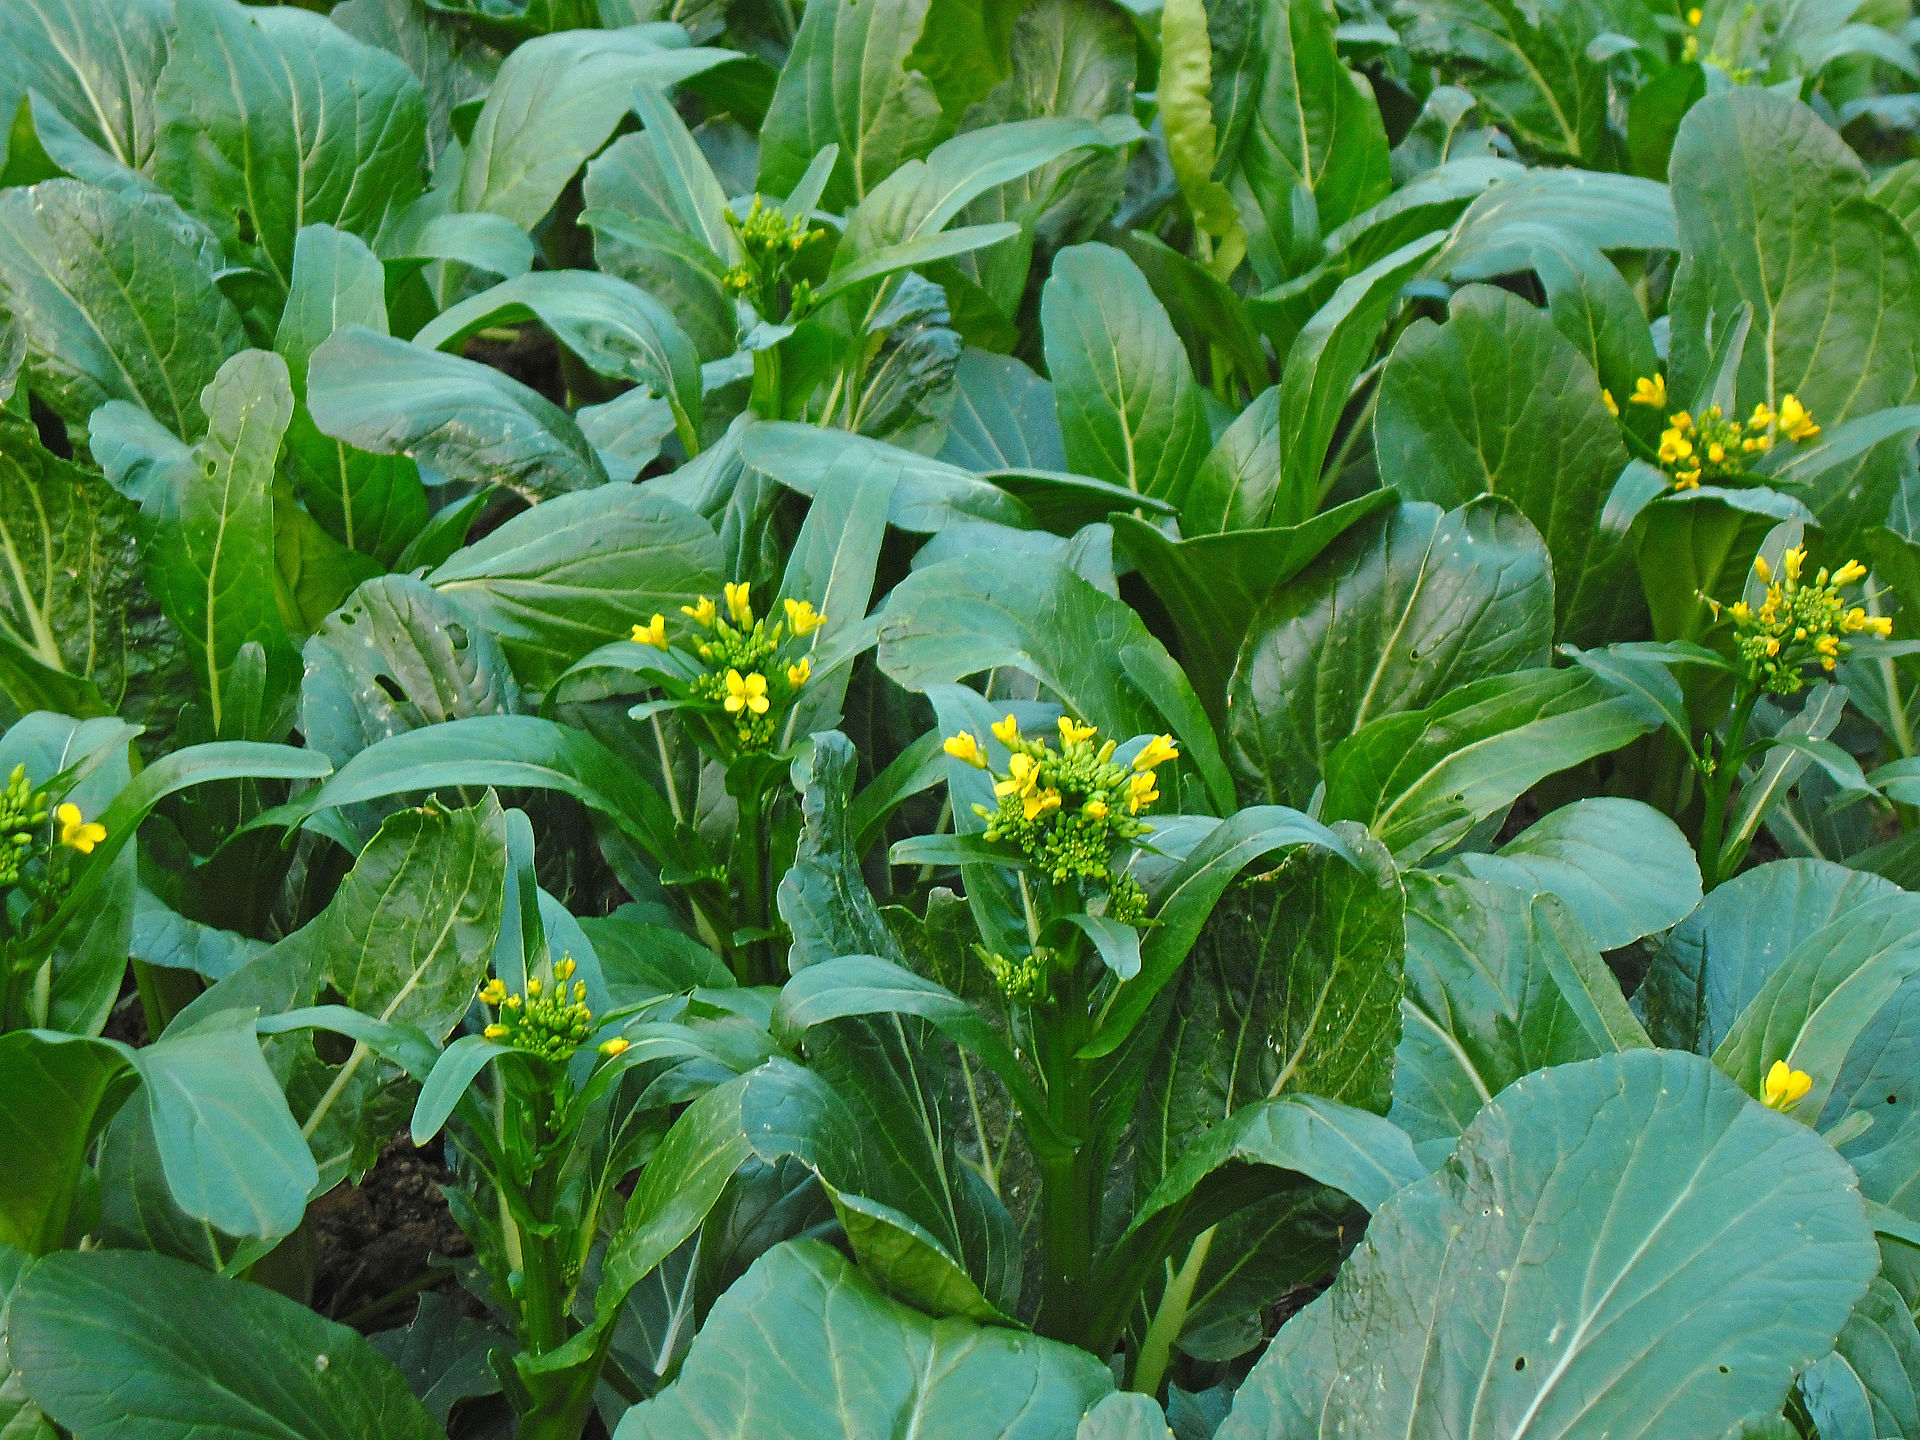 Agriculture California Edible United States moreover 301080095023 in addition Choy sum also Filed Canola Flower Bok Choy Chinese Cabbage together with Cooking Baby Choy Sum. on growing choy sum